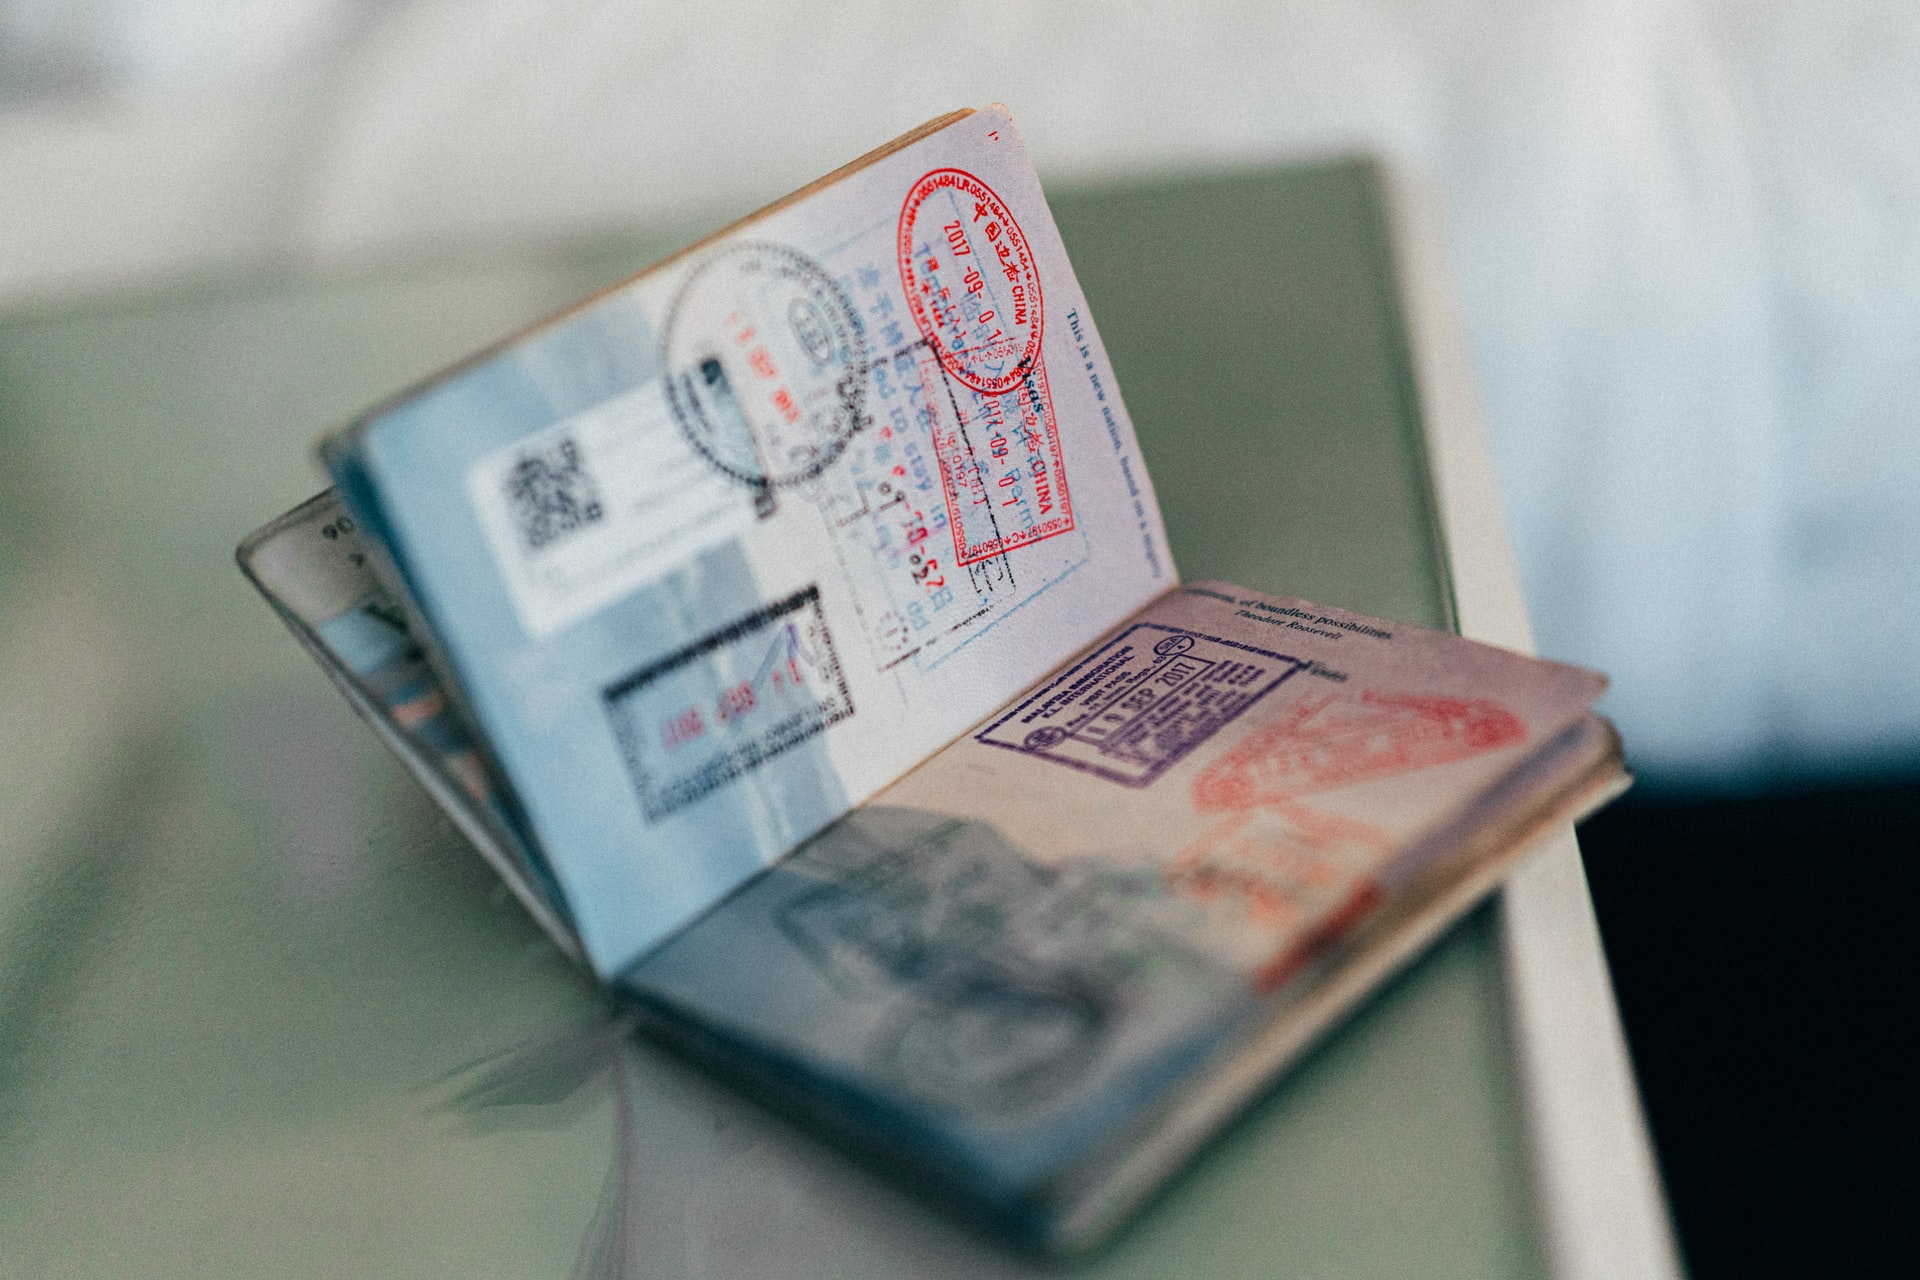 Travel checklist for you documents icluding passports and visas